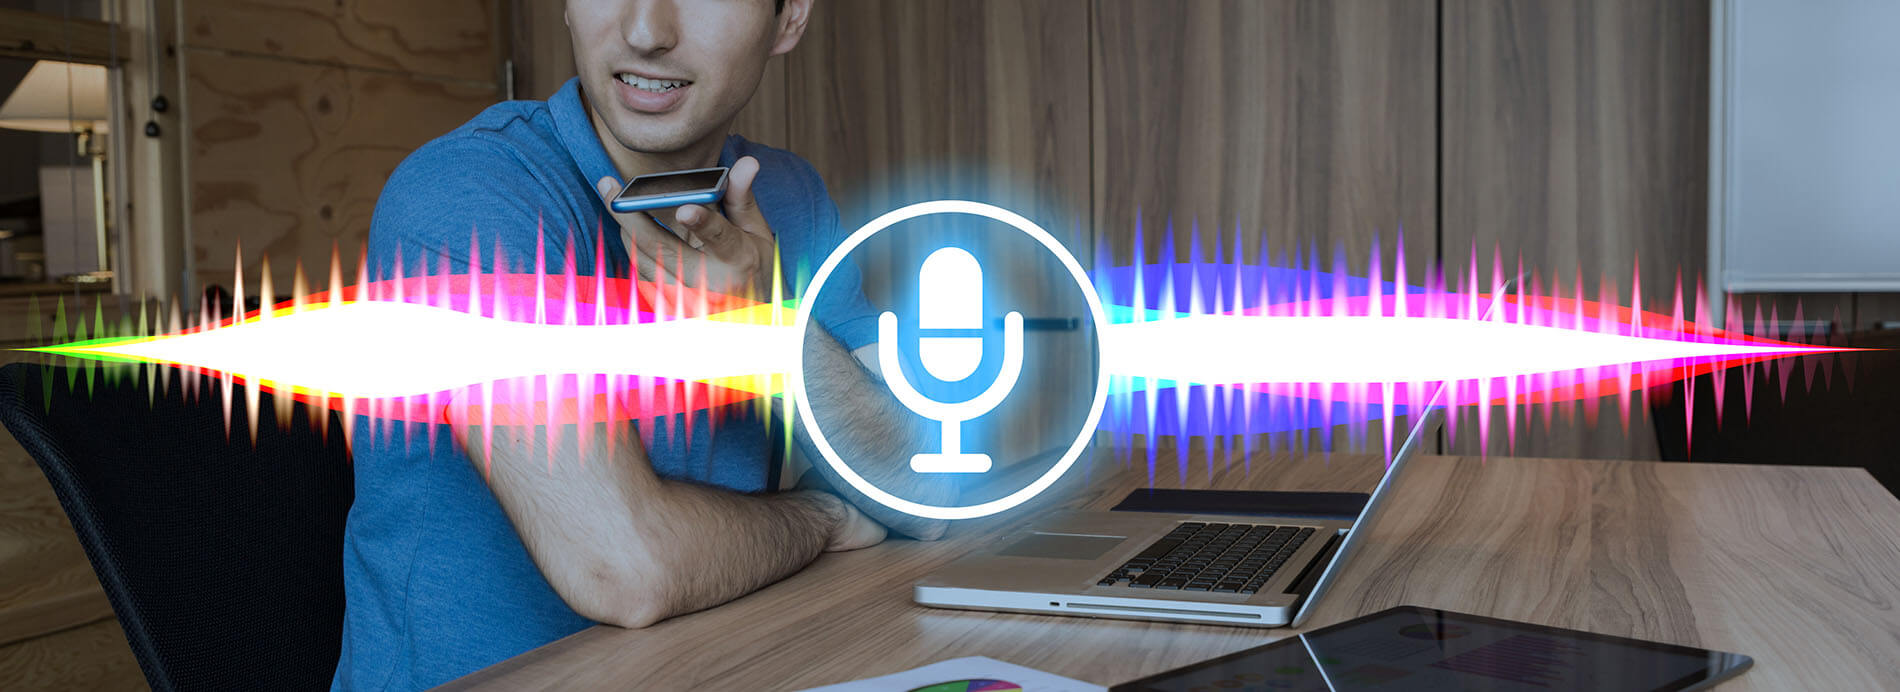 6 Easy Ways to Optimize Your Website for Voice Search